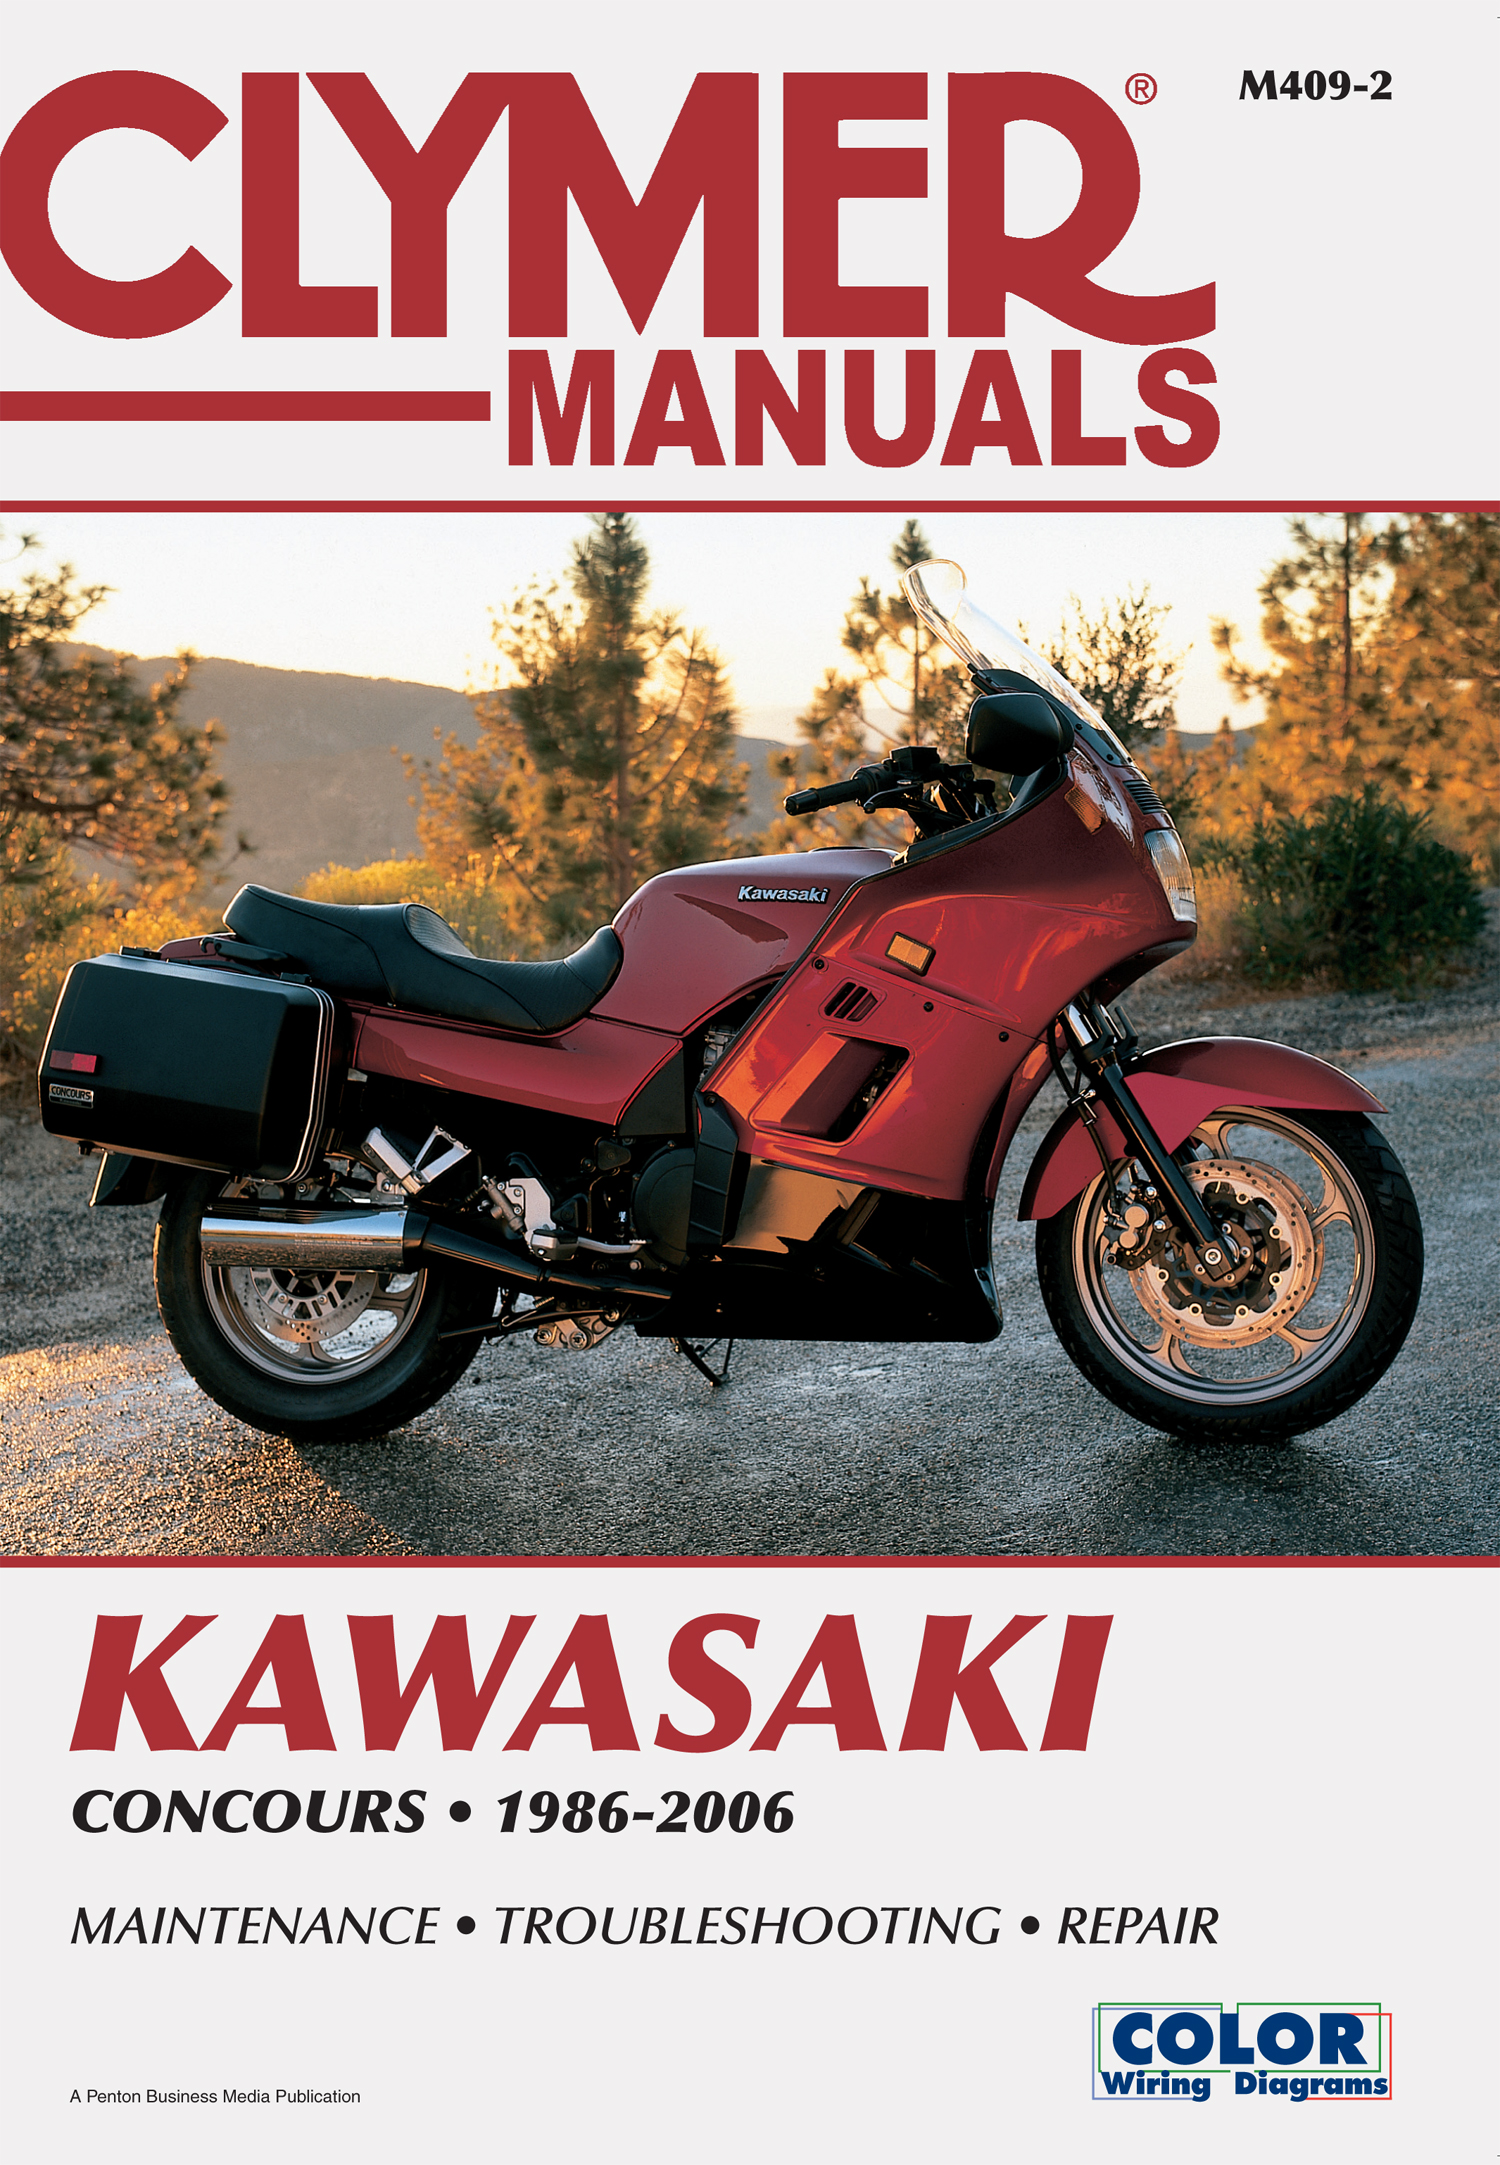 M409 Clymer Manuals Kawasaki Concours Motorcycle Manual